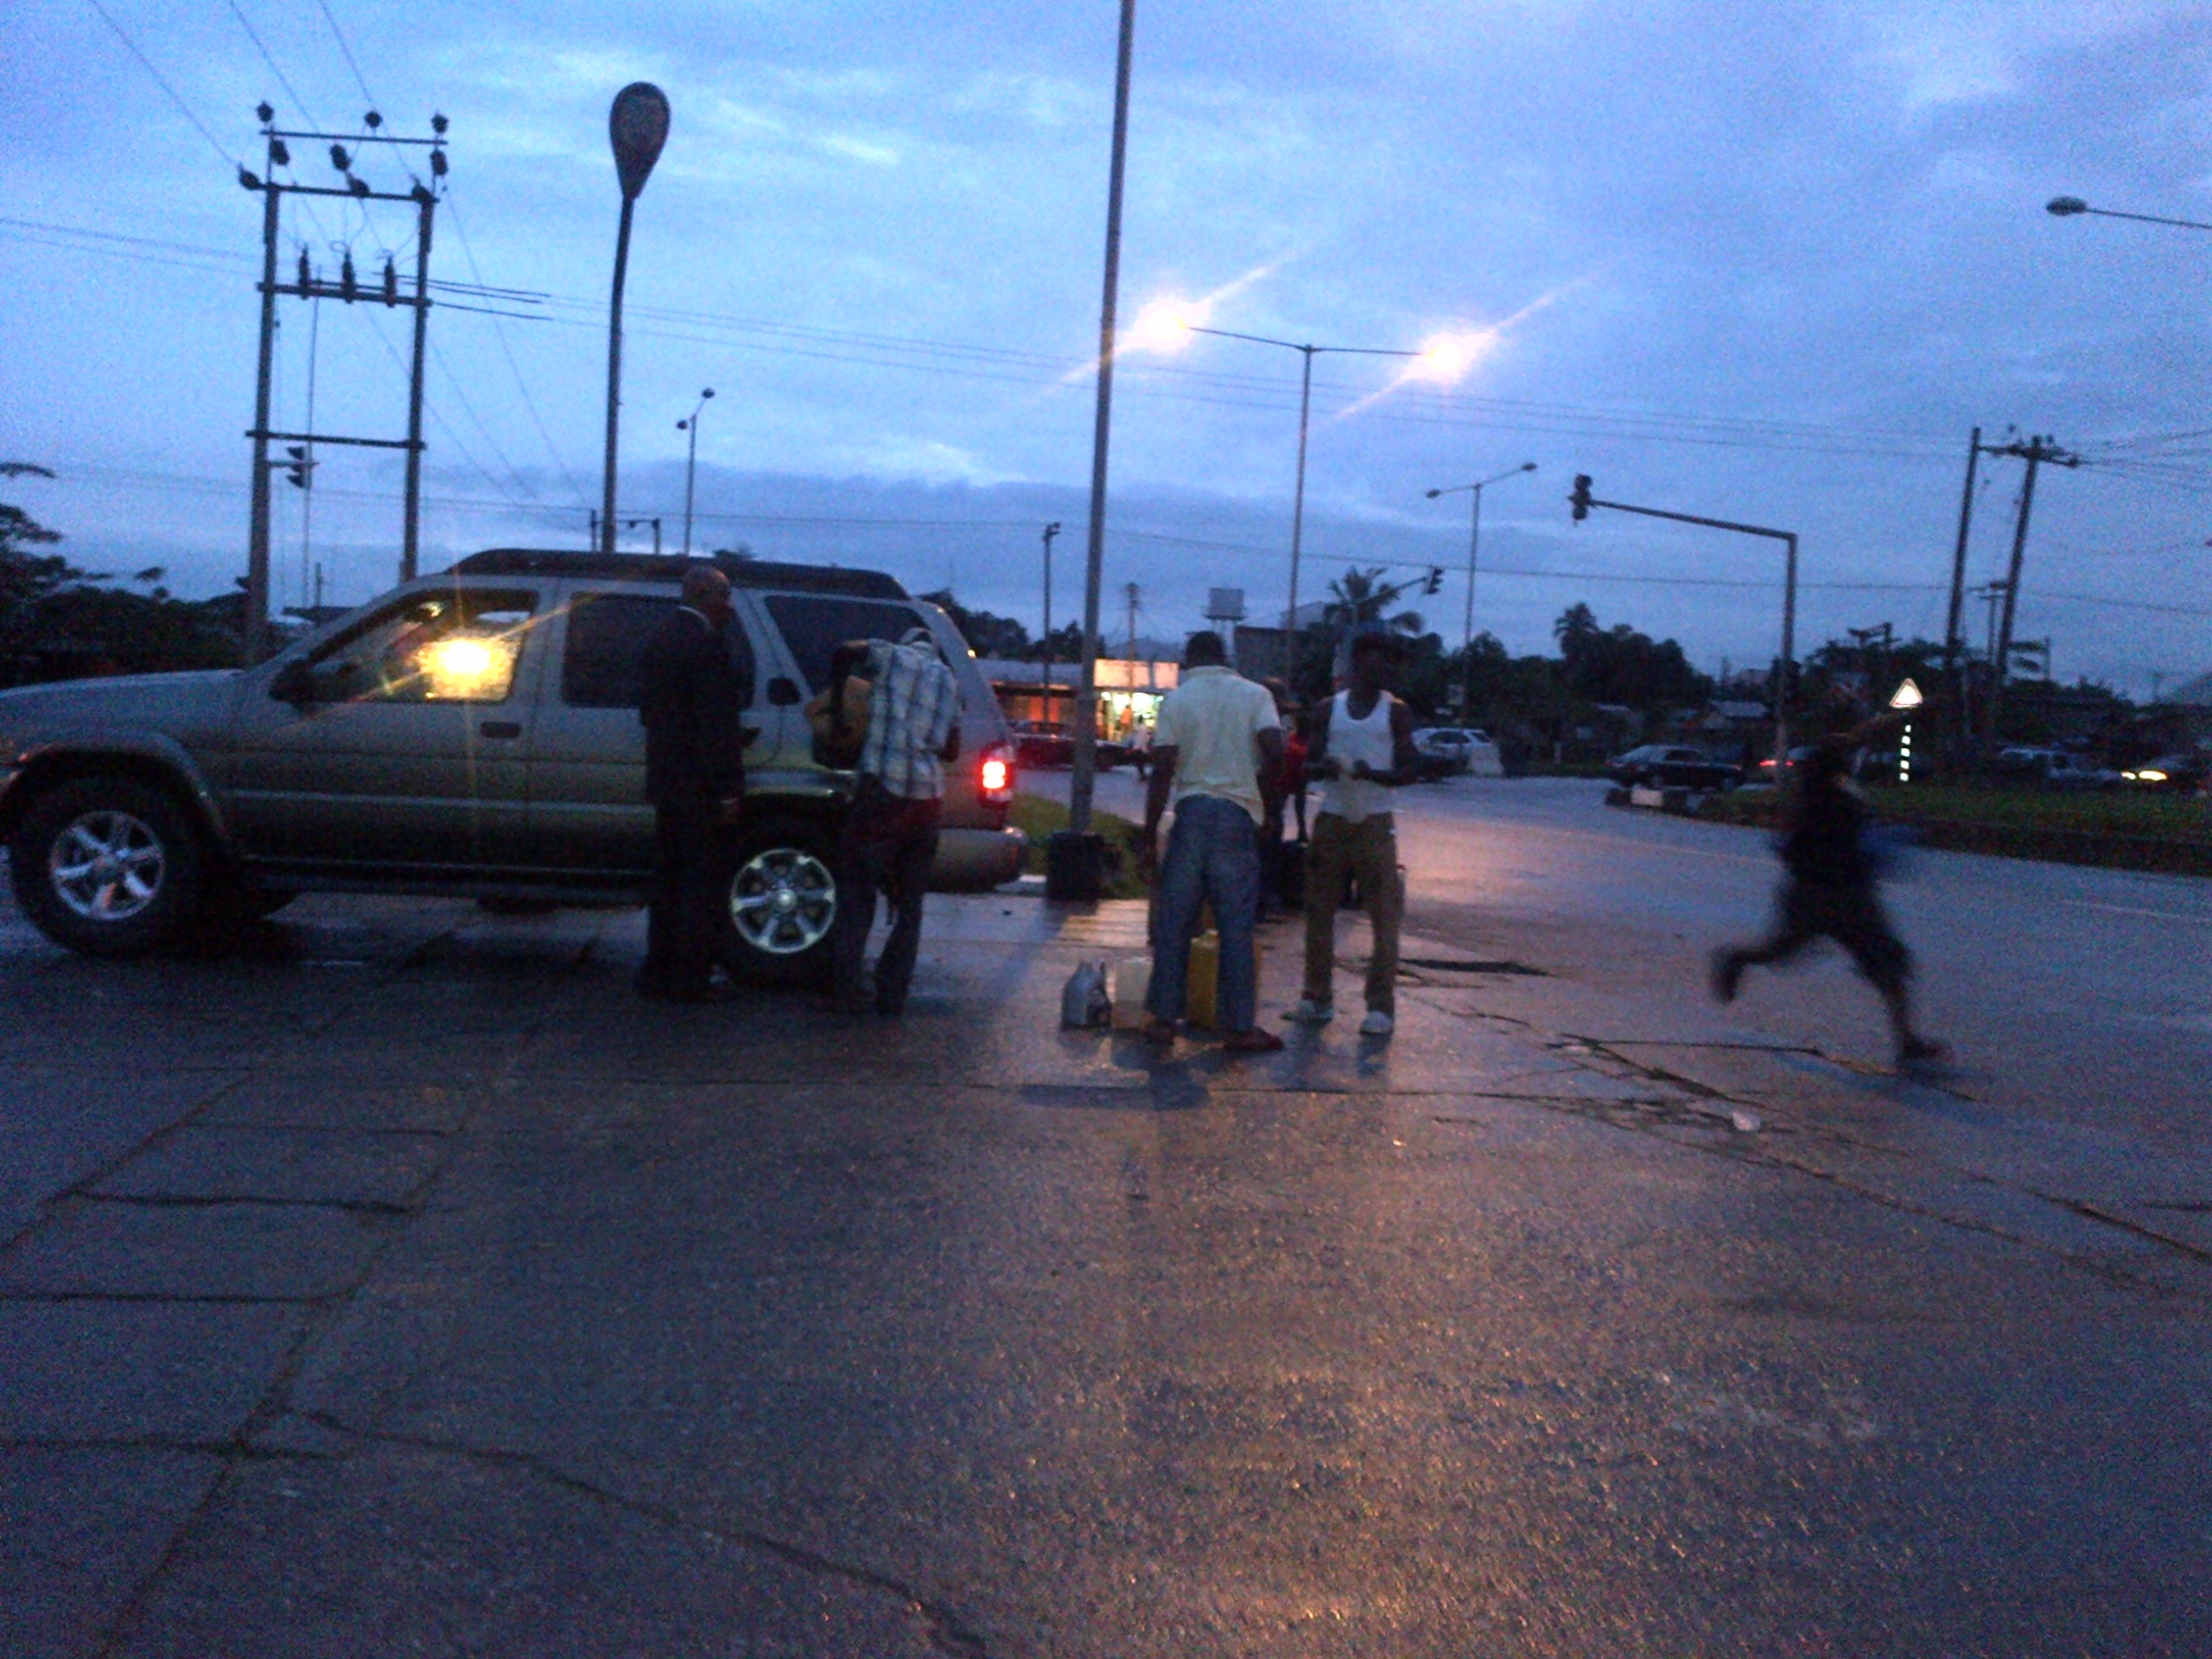 Black marketers on the streets of Calabar today